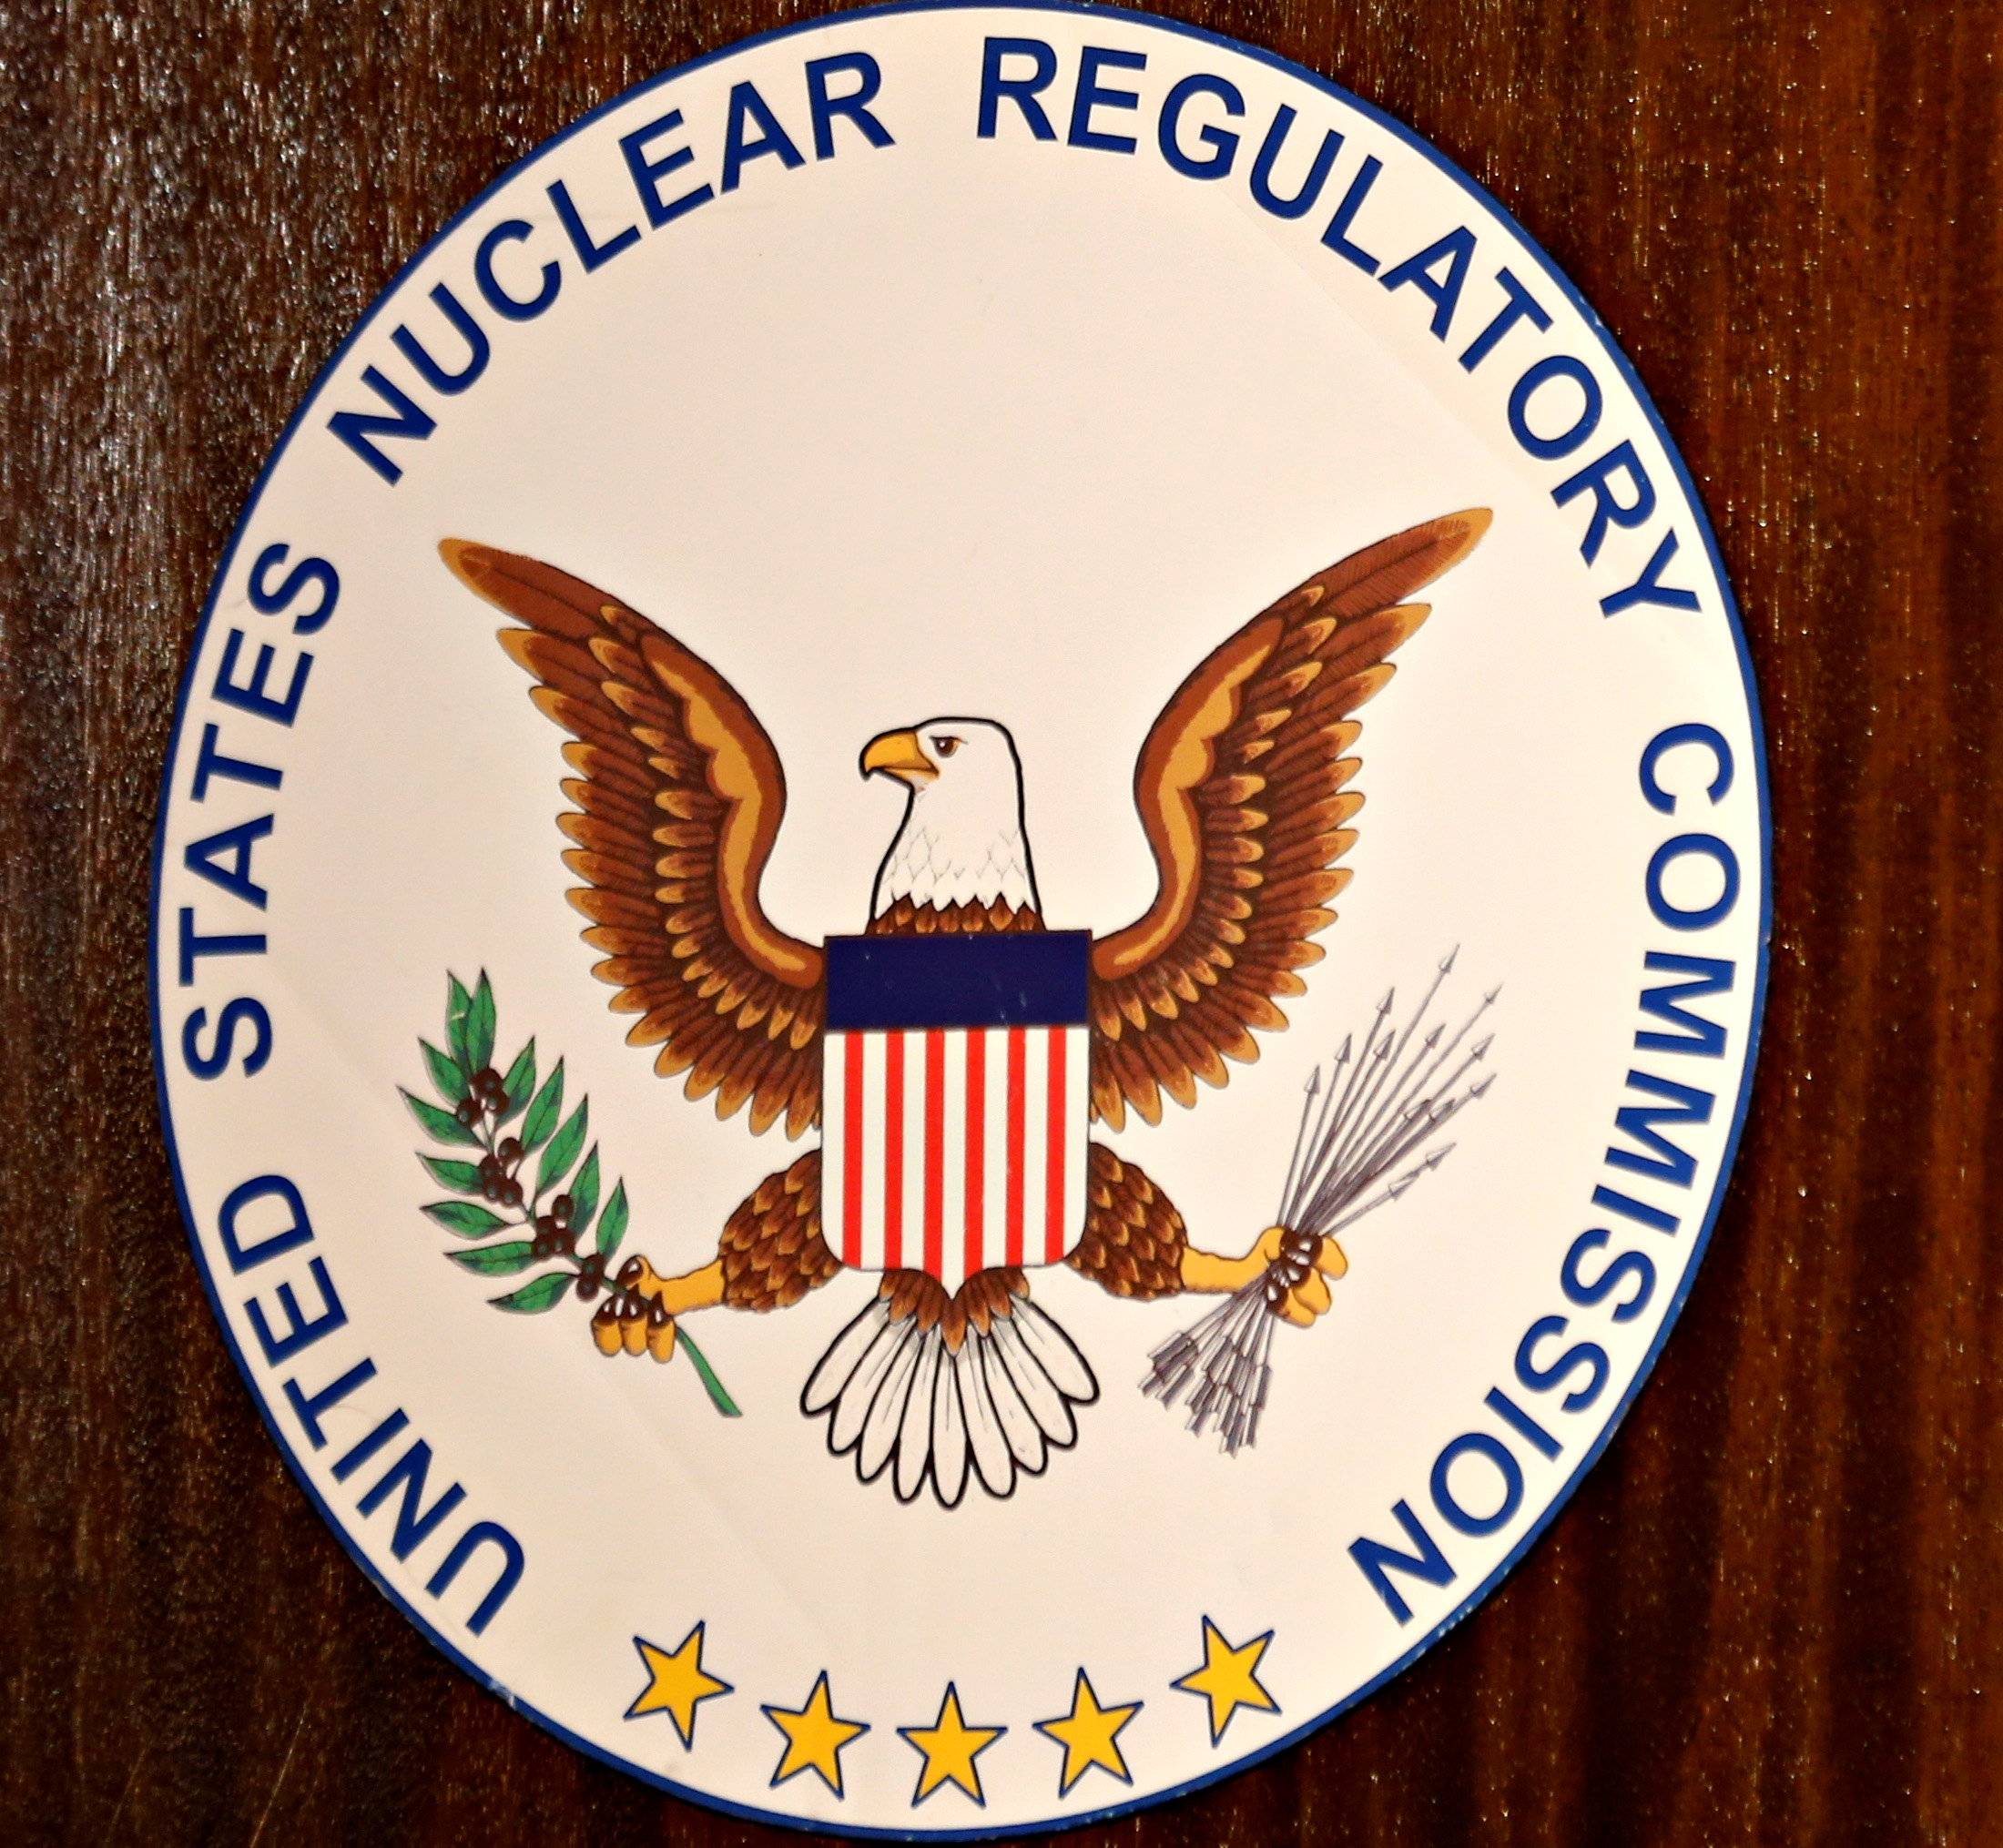 The logo of the U.S. Nuclear Regulatory Commission is shown on the podium during a public meeting hosted by the  U.S. Nuclear Regulatory Commission to discuss issues surrounding the decommissioning of the reactors at the San Onofre Nuclear Generating Station in Carlsbad, California September 26, 2013.  REUTERS/Mike Blake